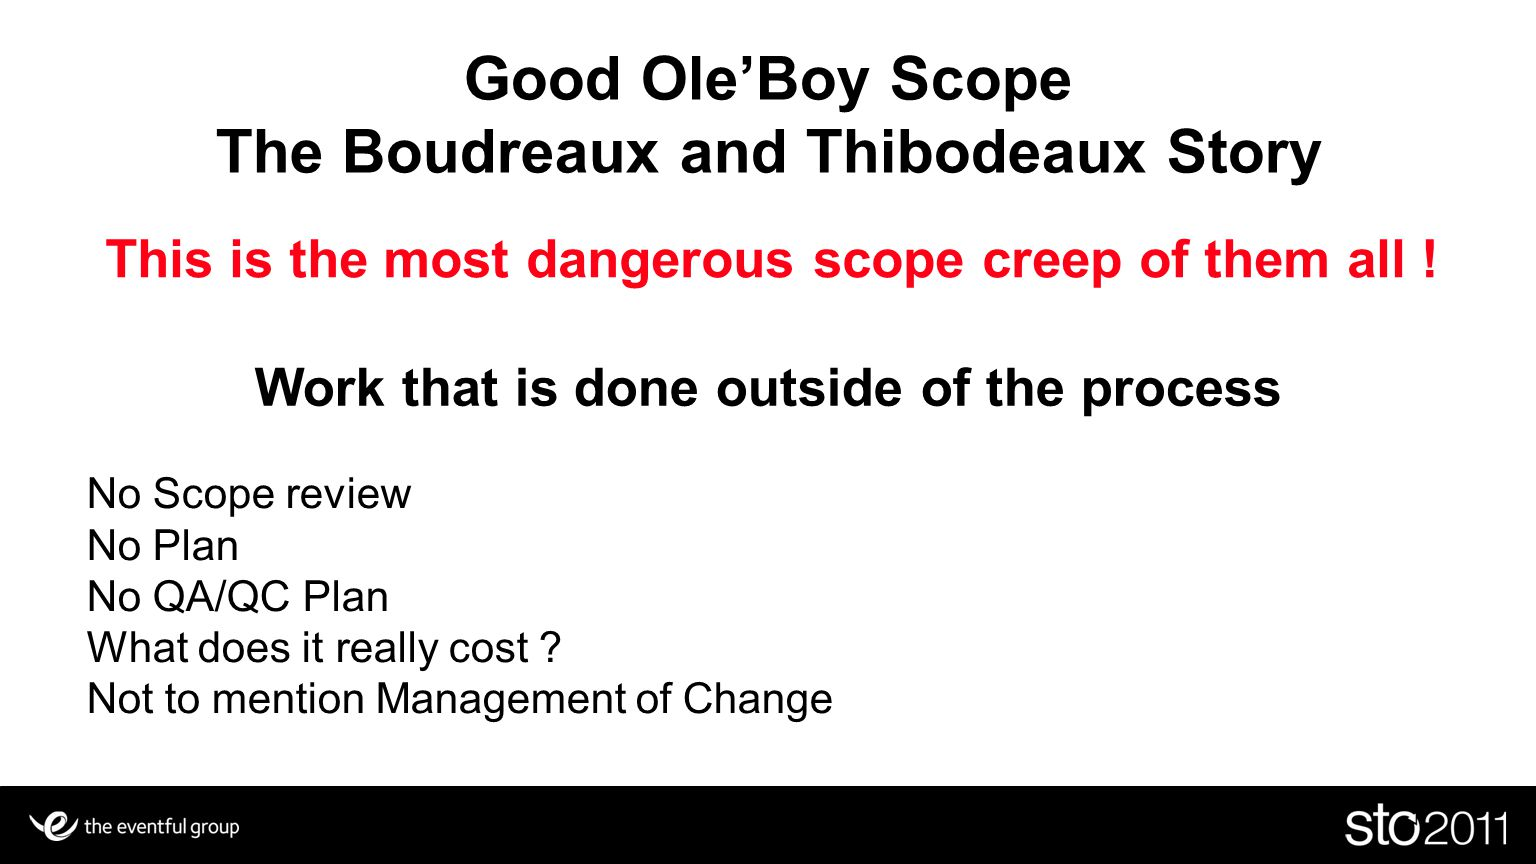 Good Ole'Boy Scope The Boudreaux and Thibodeaux Story